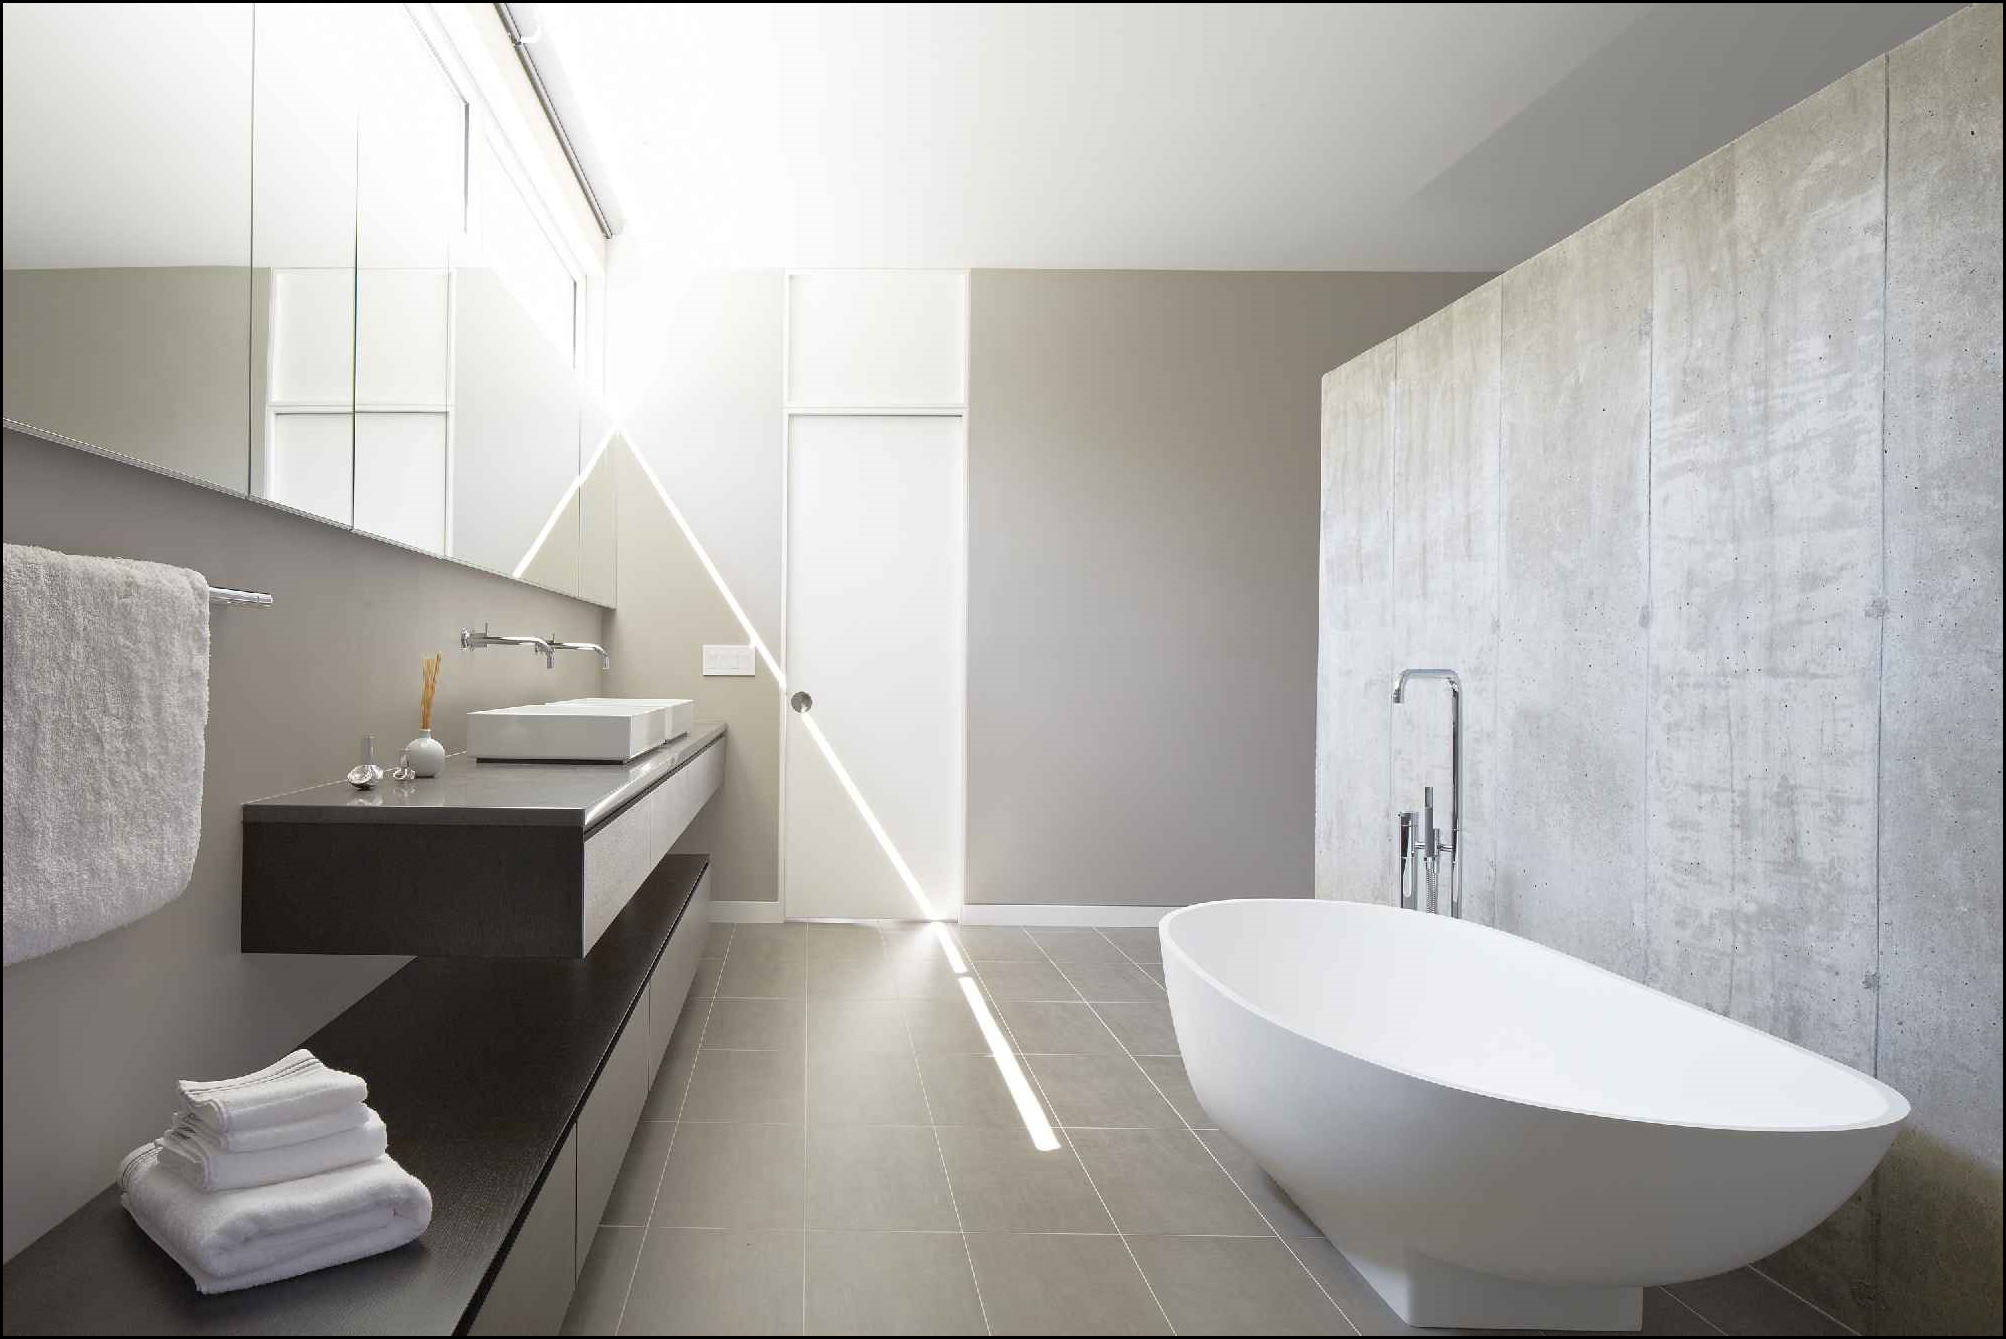 Blue Bathroom Tiles Tiled Bathrooms Modern Day Tile Style Pictures Wall  Dwell Home Plans Bath Spa